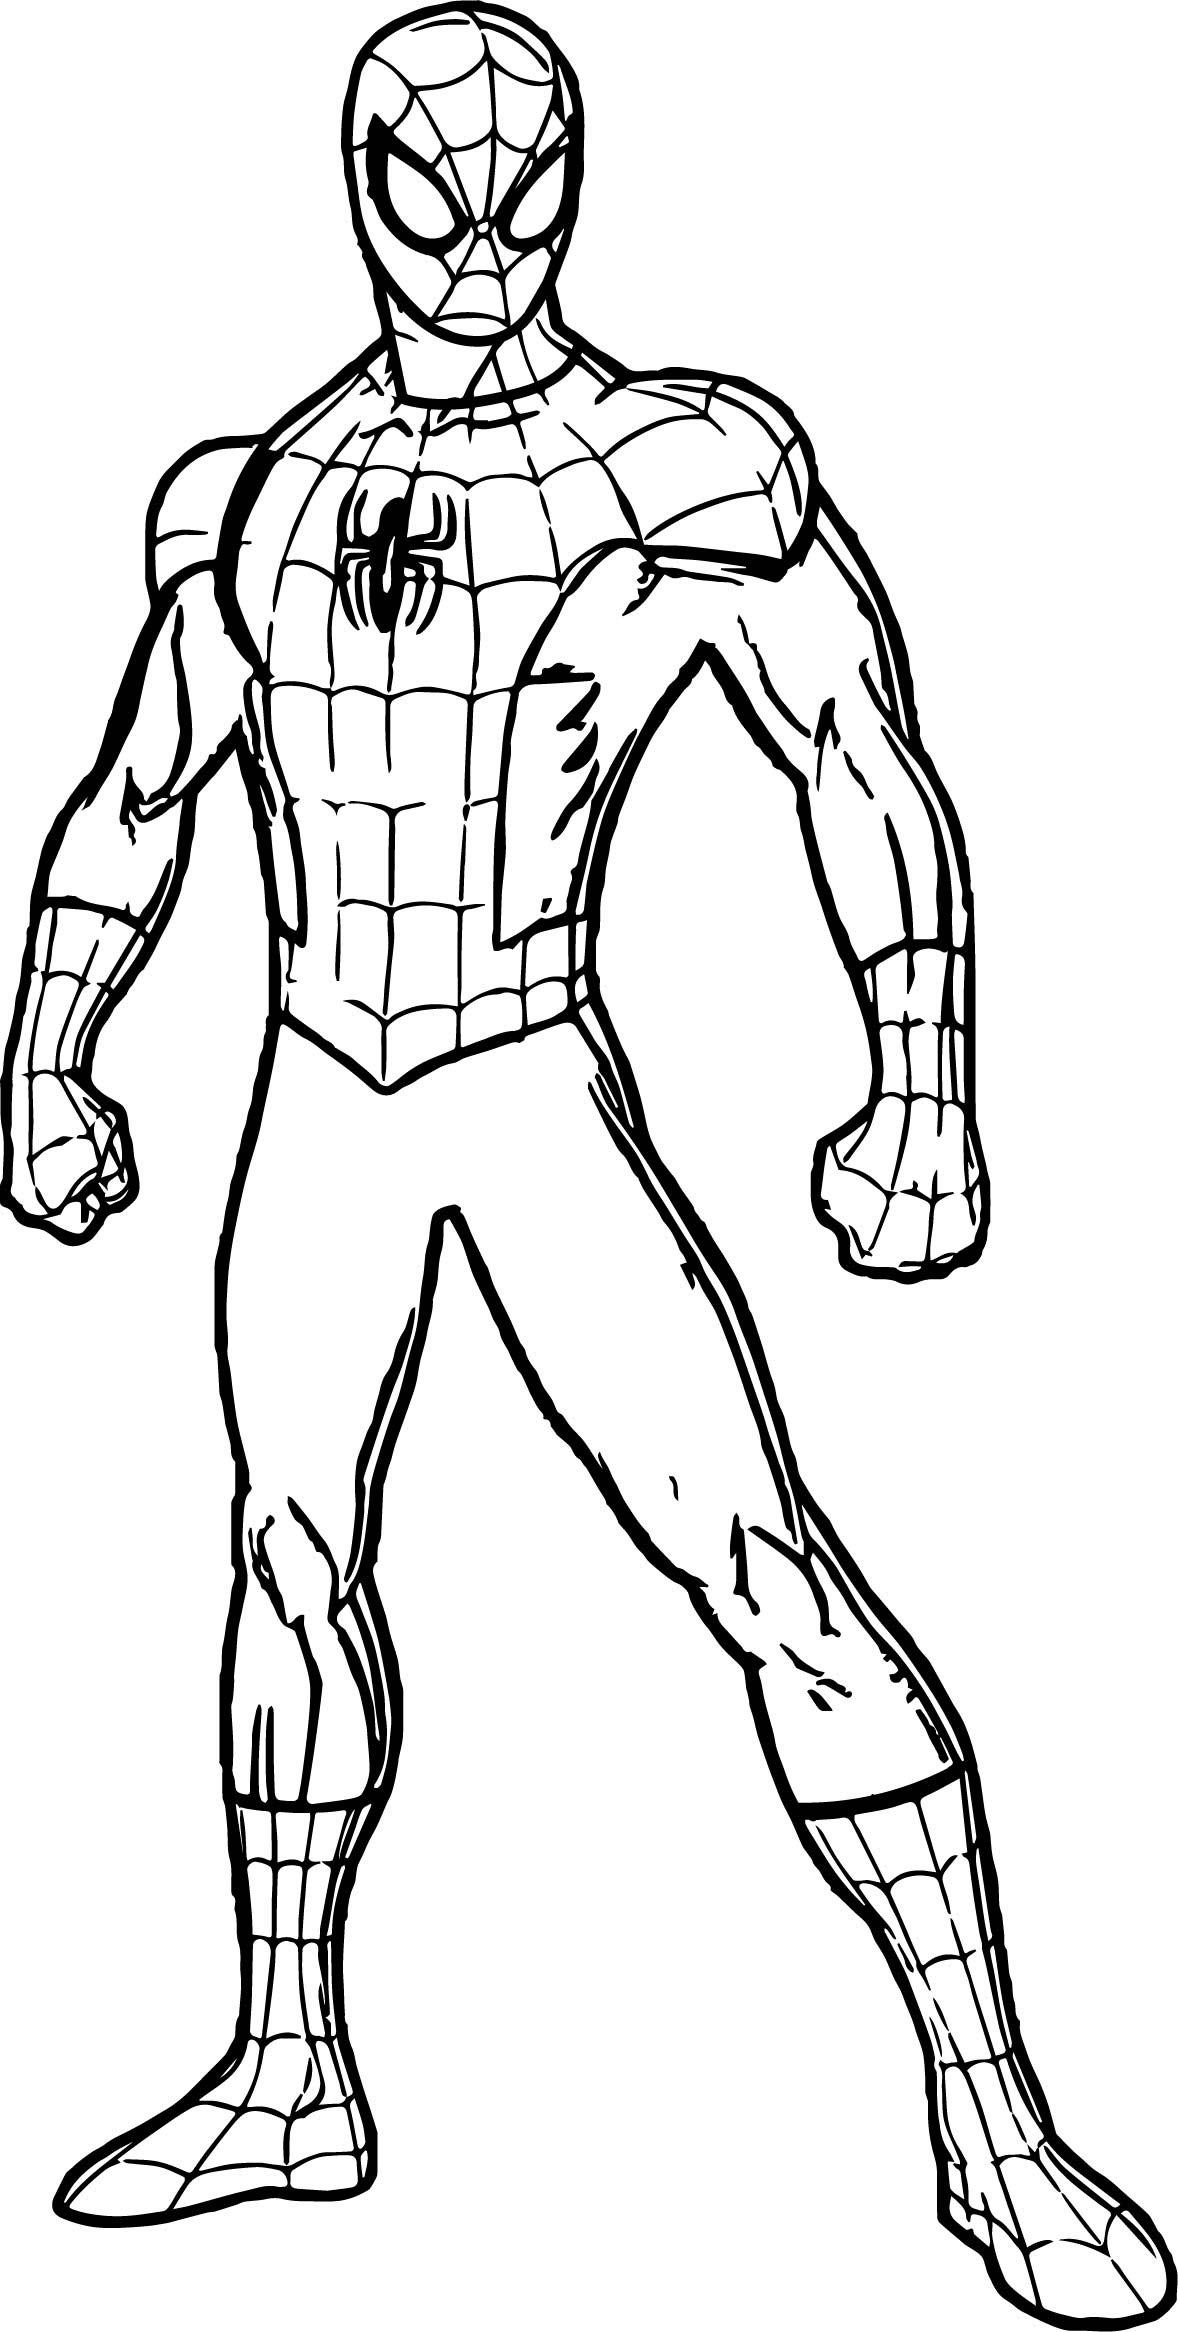 Spiderman Outline Drawing at GetDrawings | Free download